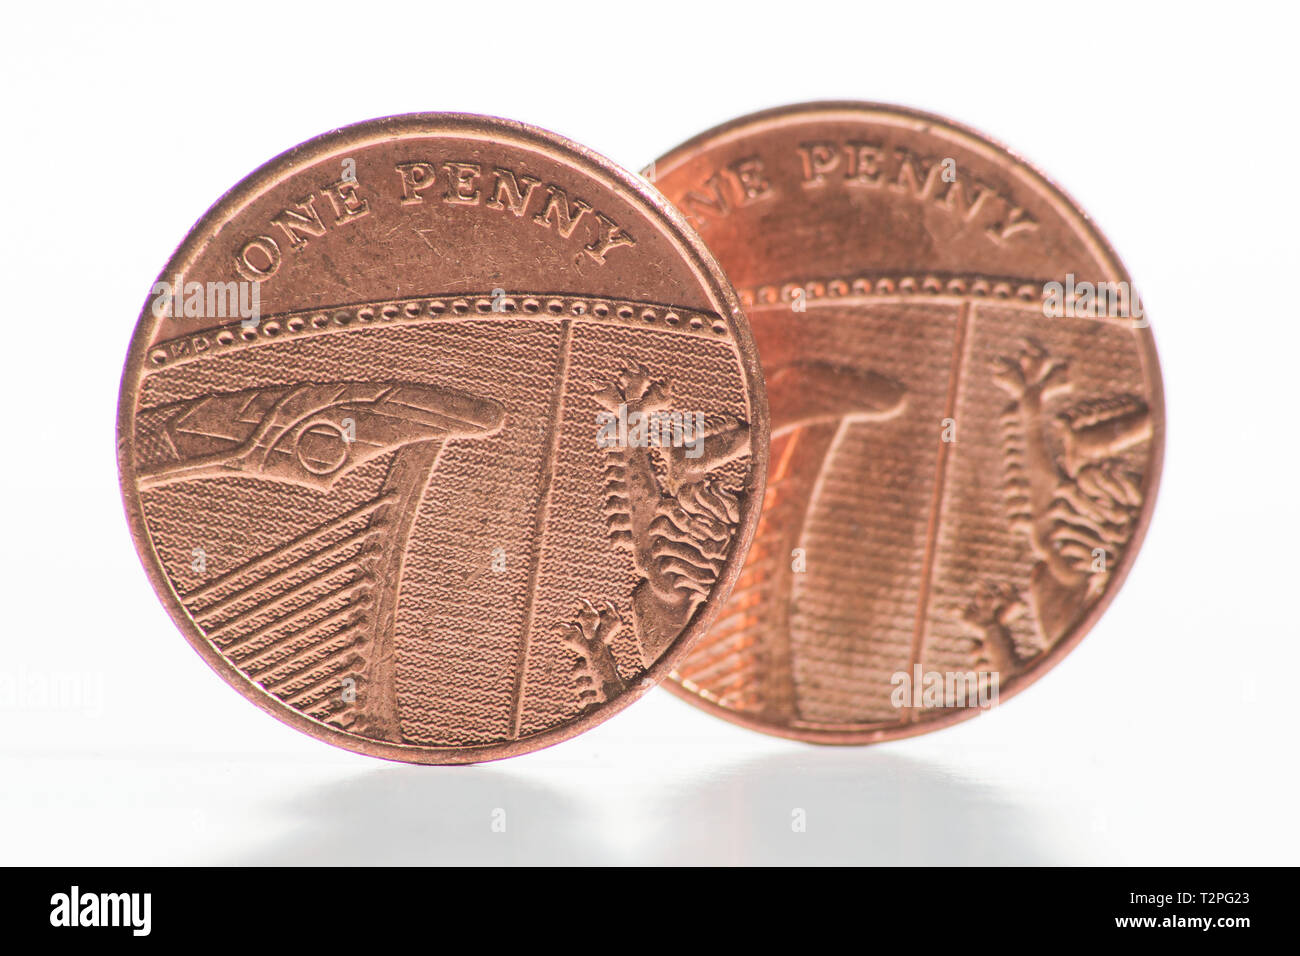 Coins. The One Pence Piece.  This is the smallest denomination in the Sterling currency. Stock Photo